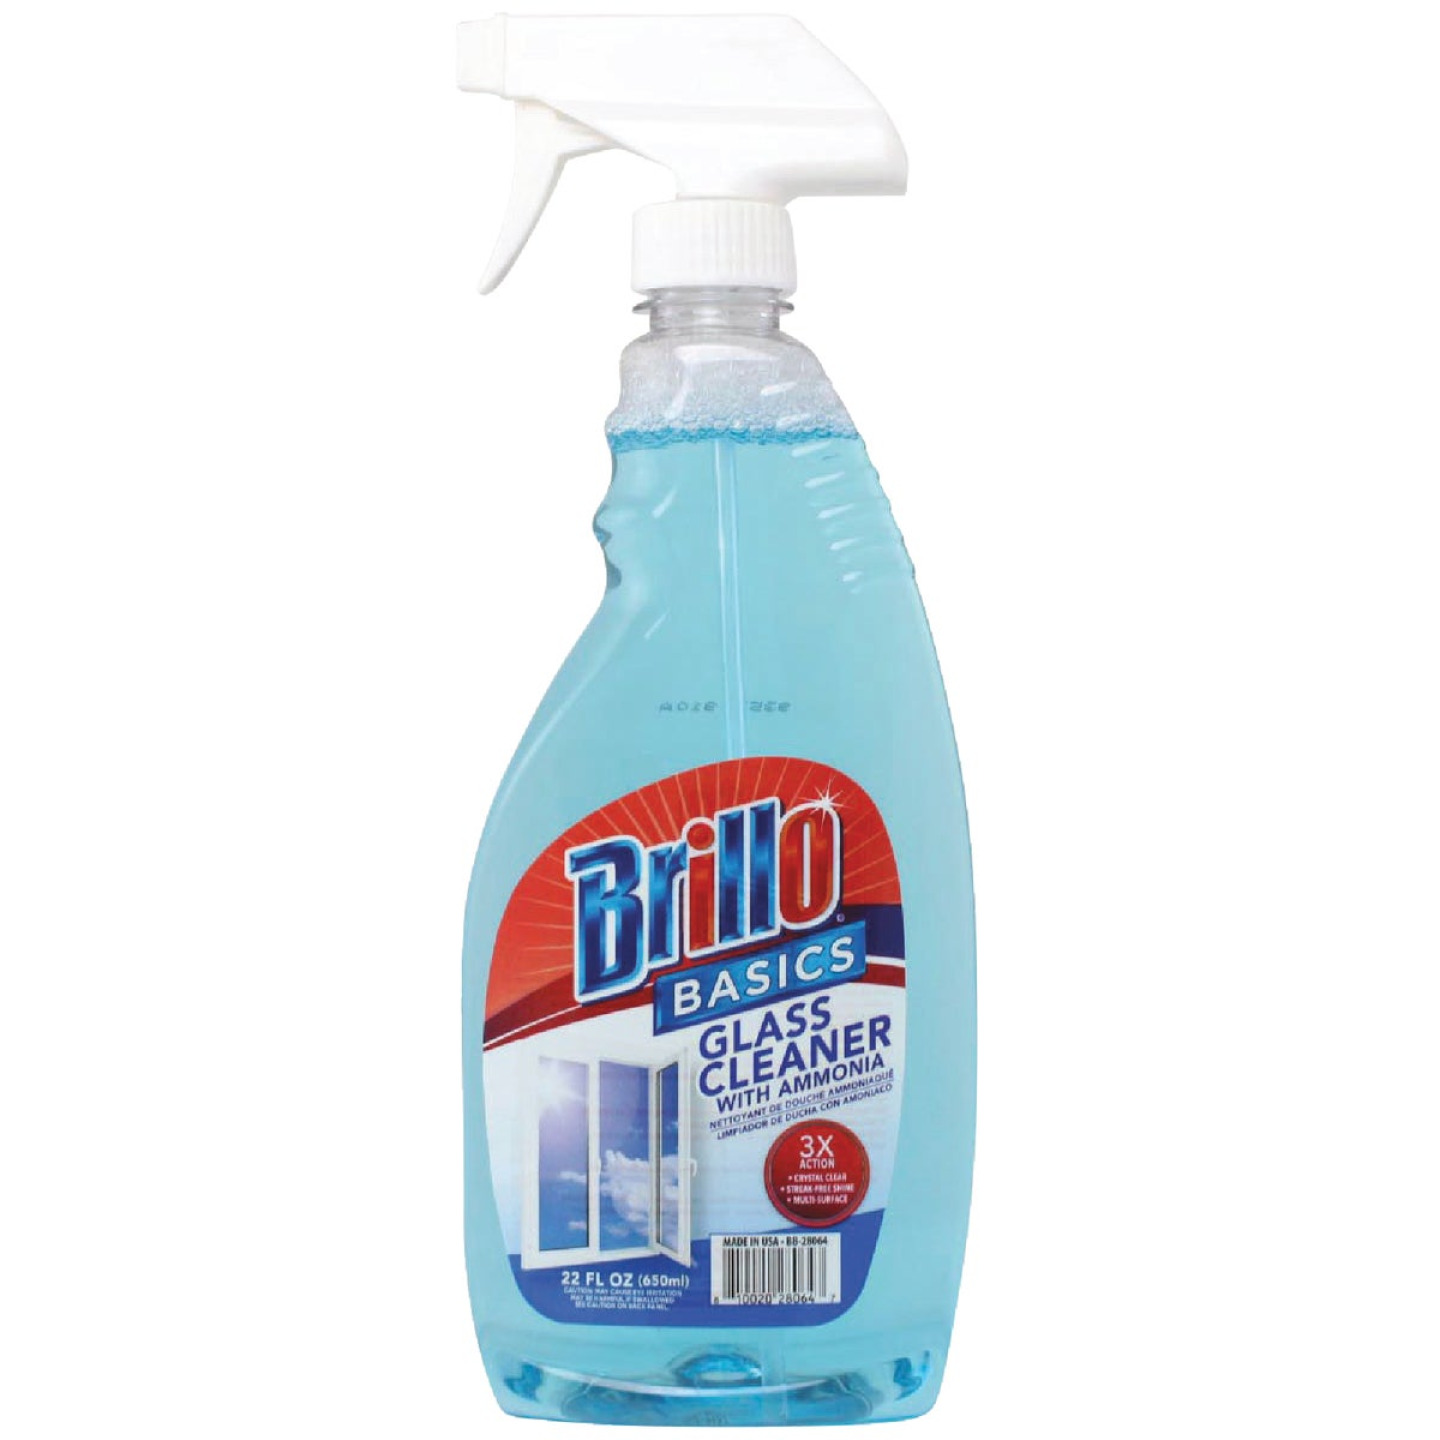 Brillo Basics 22 Oz. Trigger Spray Ammonia Glass & Surface Cleaner Image 1